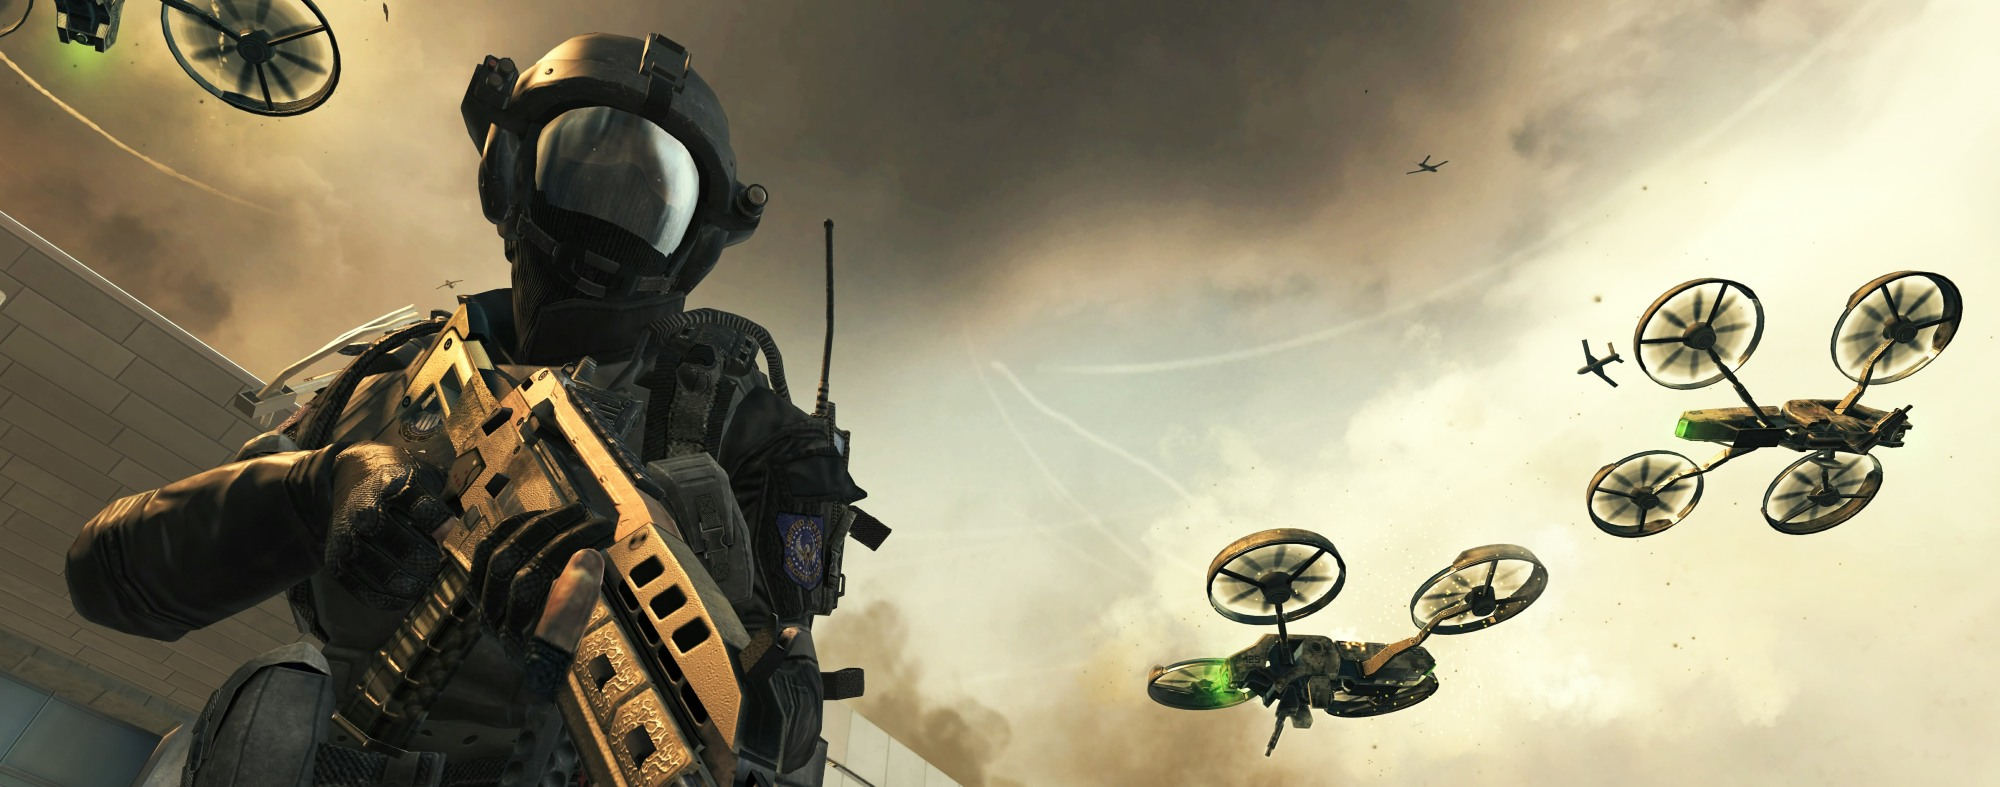 Call of Duty: Black Ops 2 system requirements and enhanced